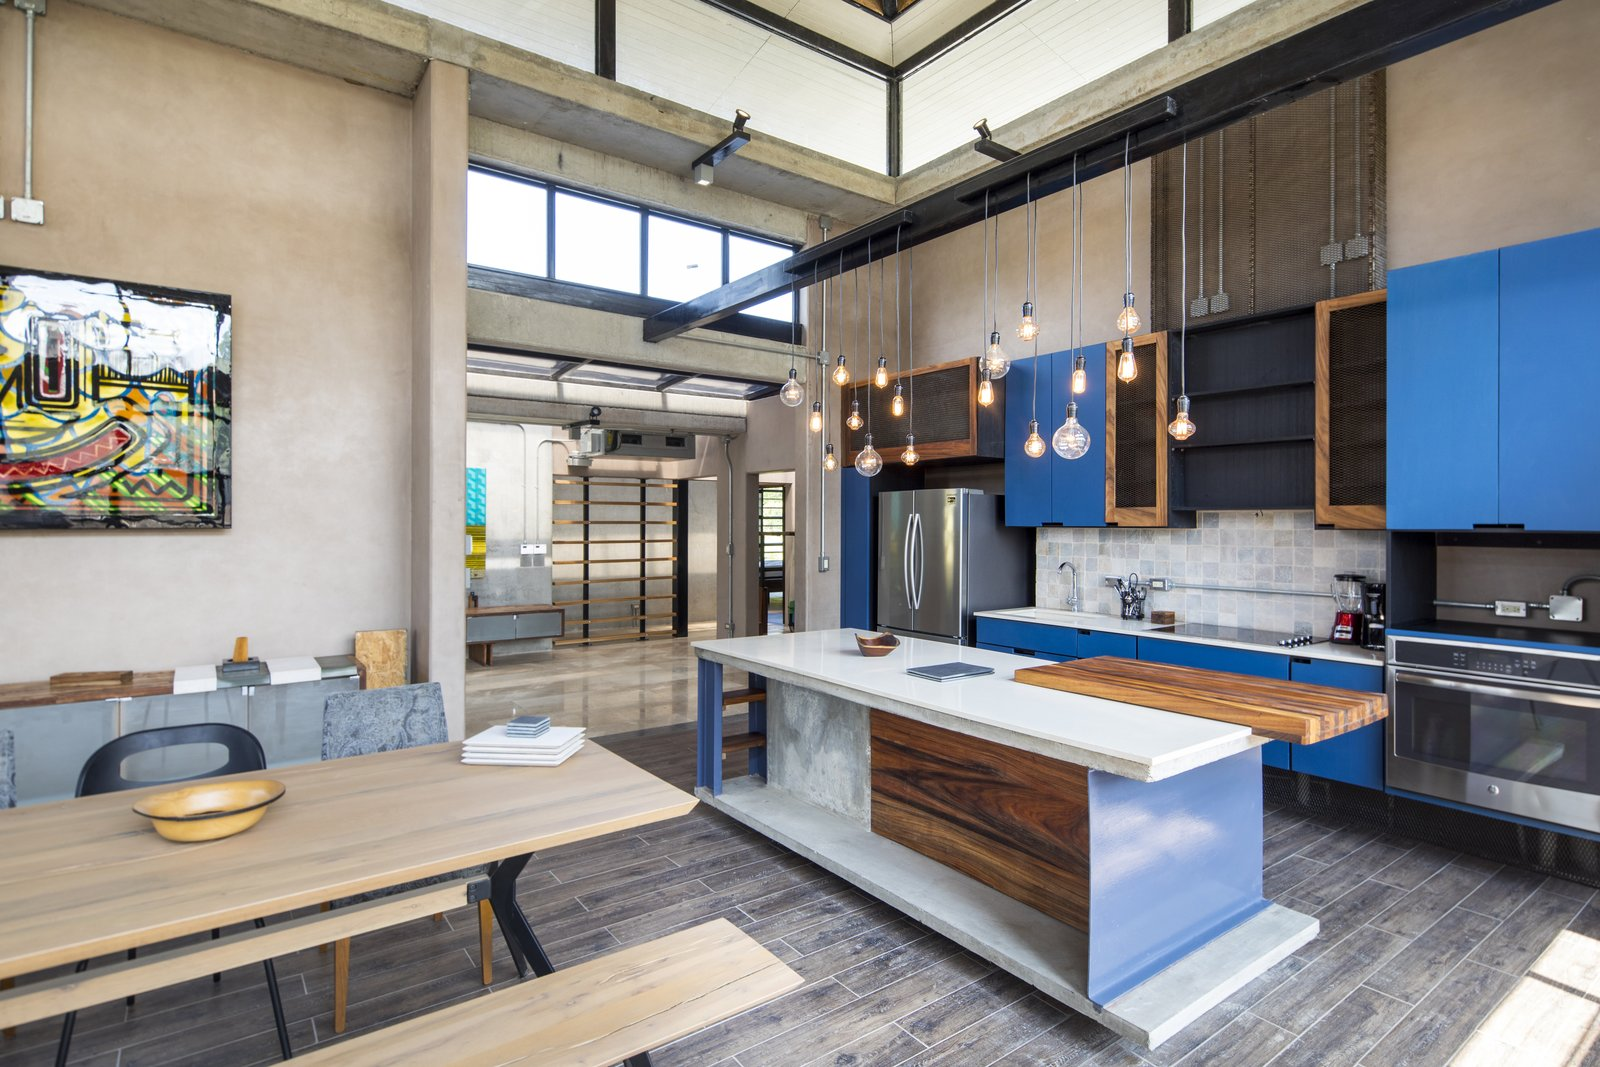 Kitchen, Pendant, Wood, Medium Hardwood, Wall Oven, Stone Tile, Concrete, Colorful, Cooktops, Refrigerator, and Undermount The kitchen and dining connects to the living room.  Kitchen Cooktops Undermount Wall Oven Stone Tile Colorful Photos from A Concrete Abode Becomes a Surfer's Paradise